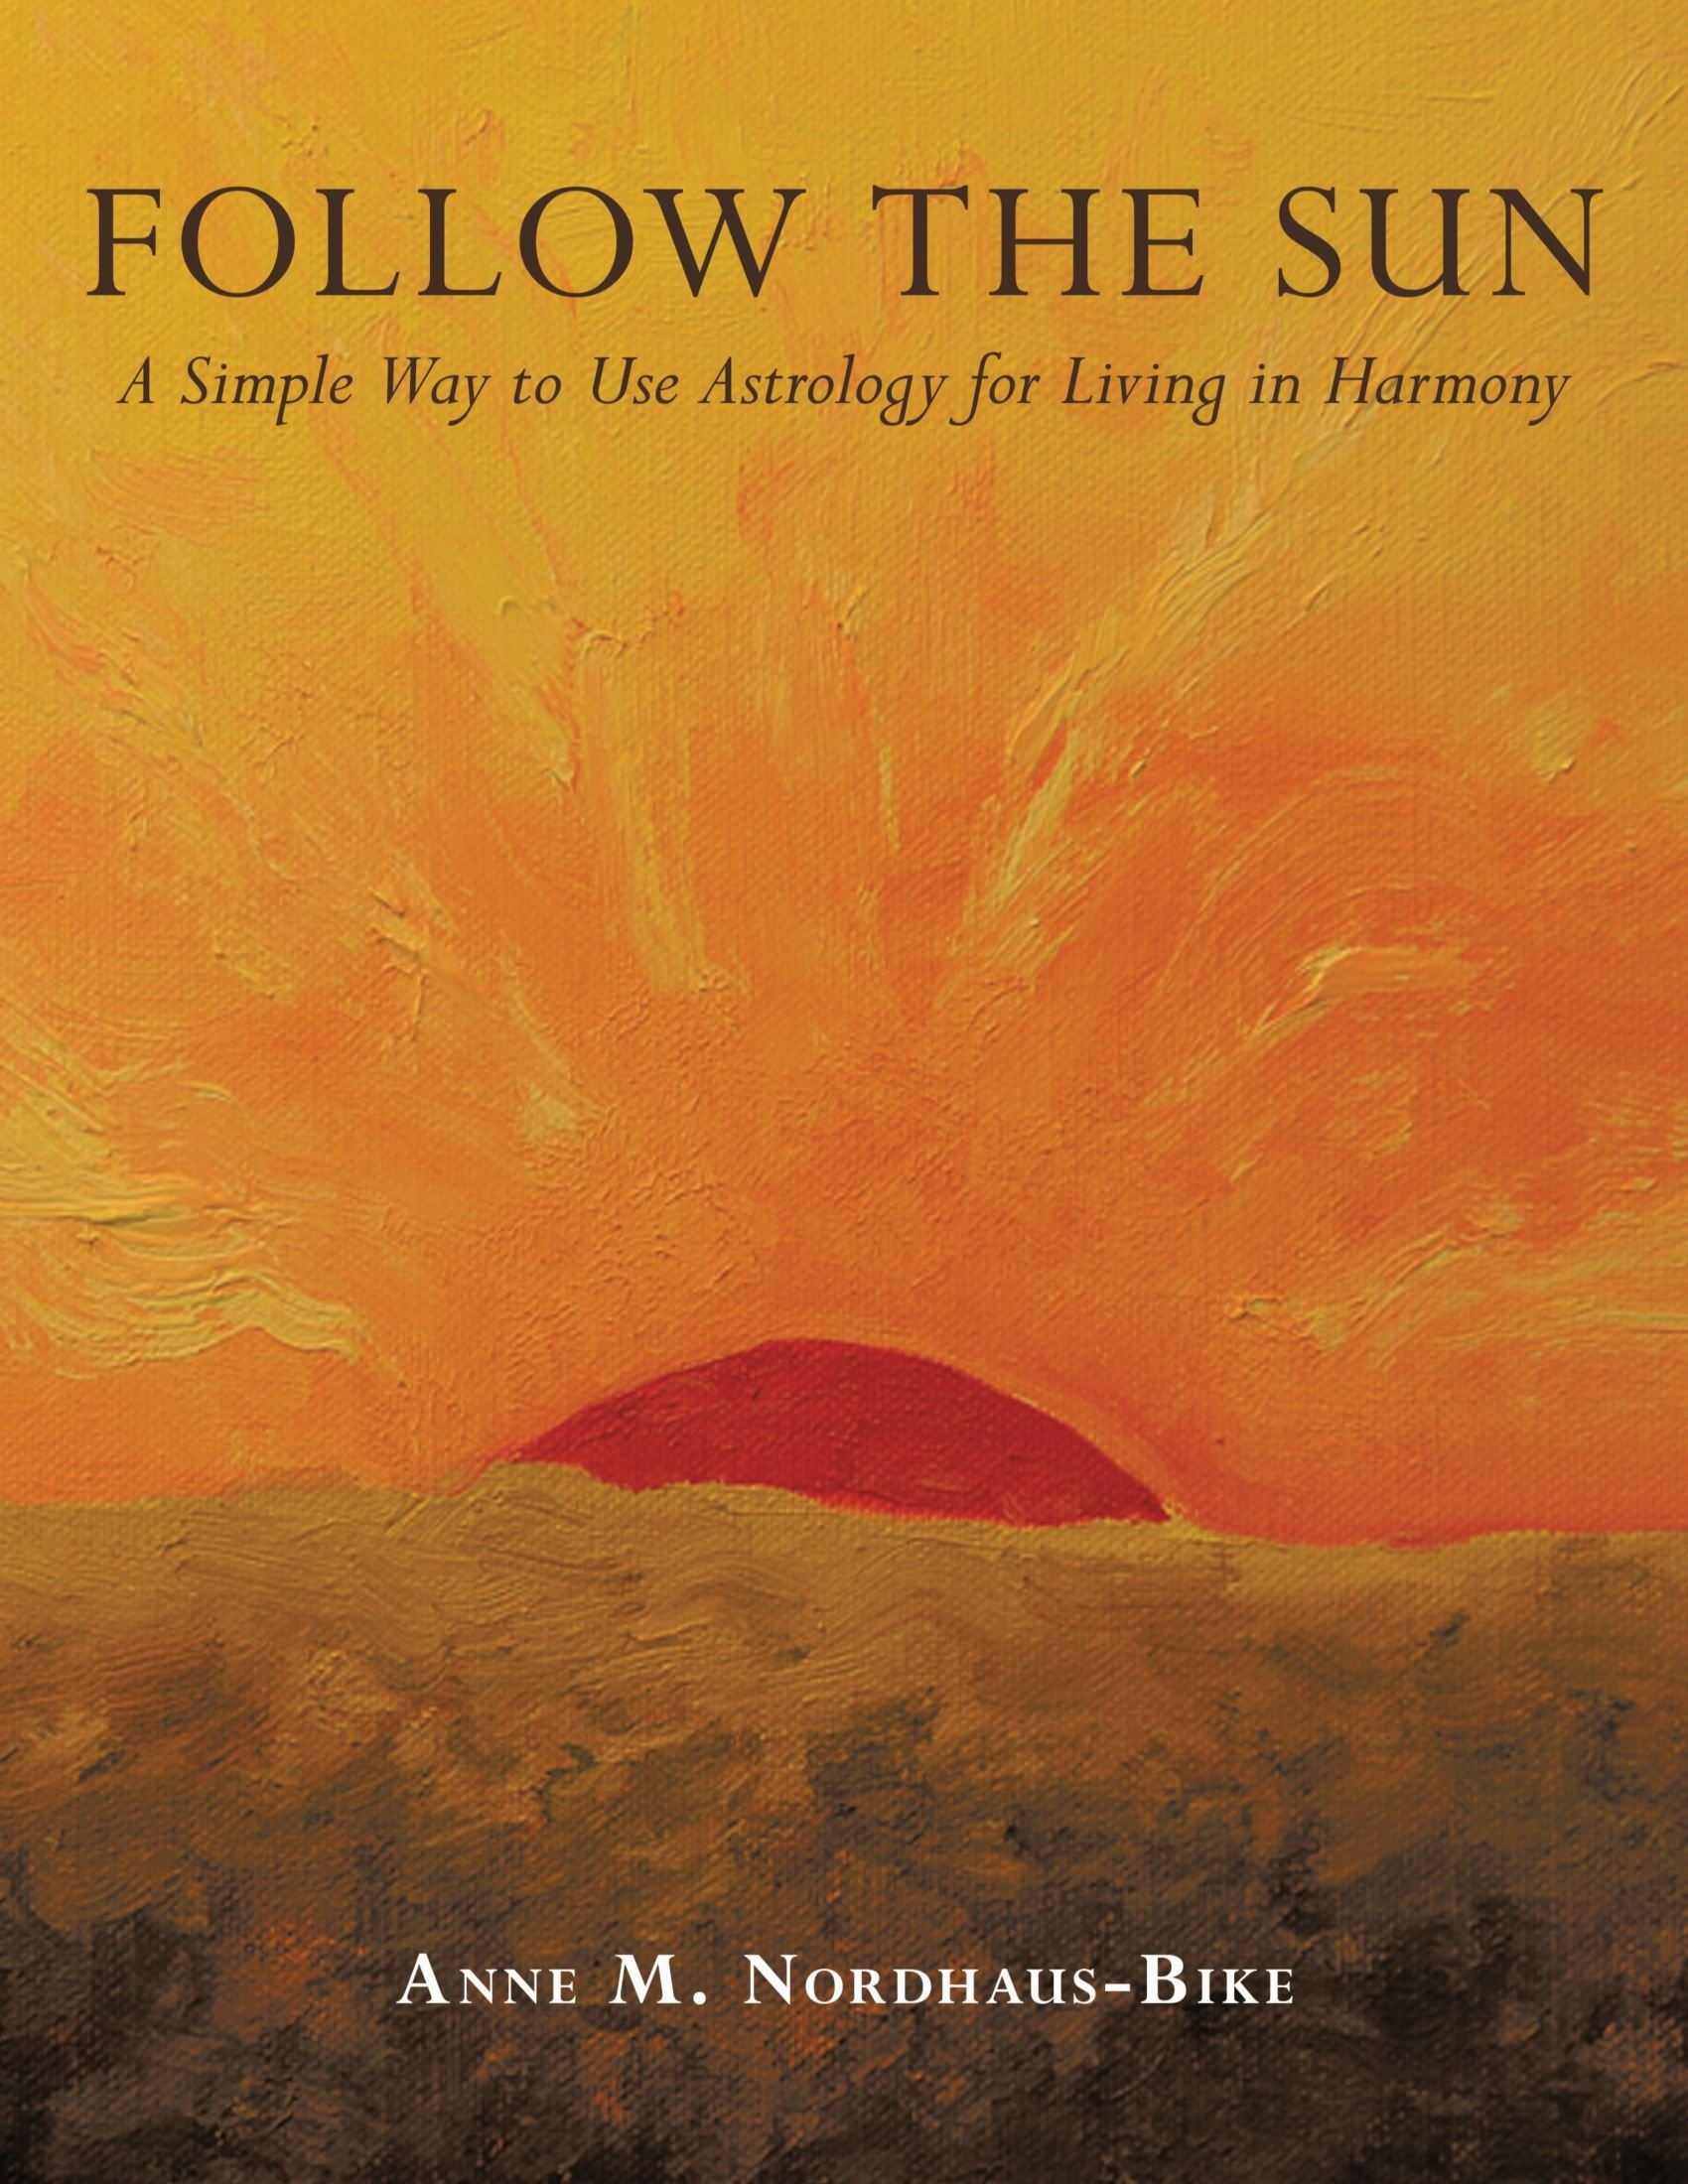 Download Follow the Sun: A Simple Way to Use Astrology for Living in Harmony PDF